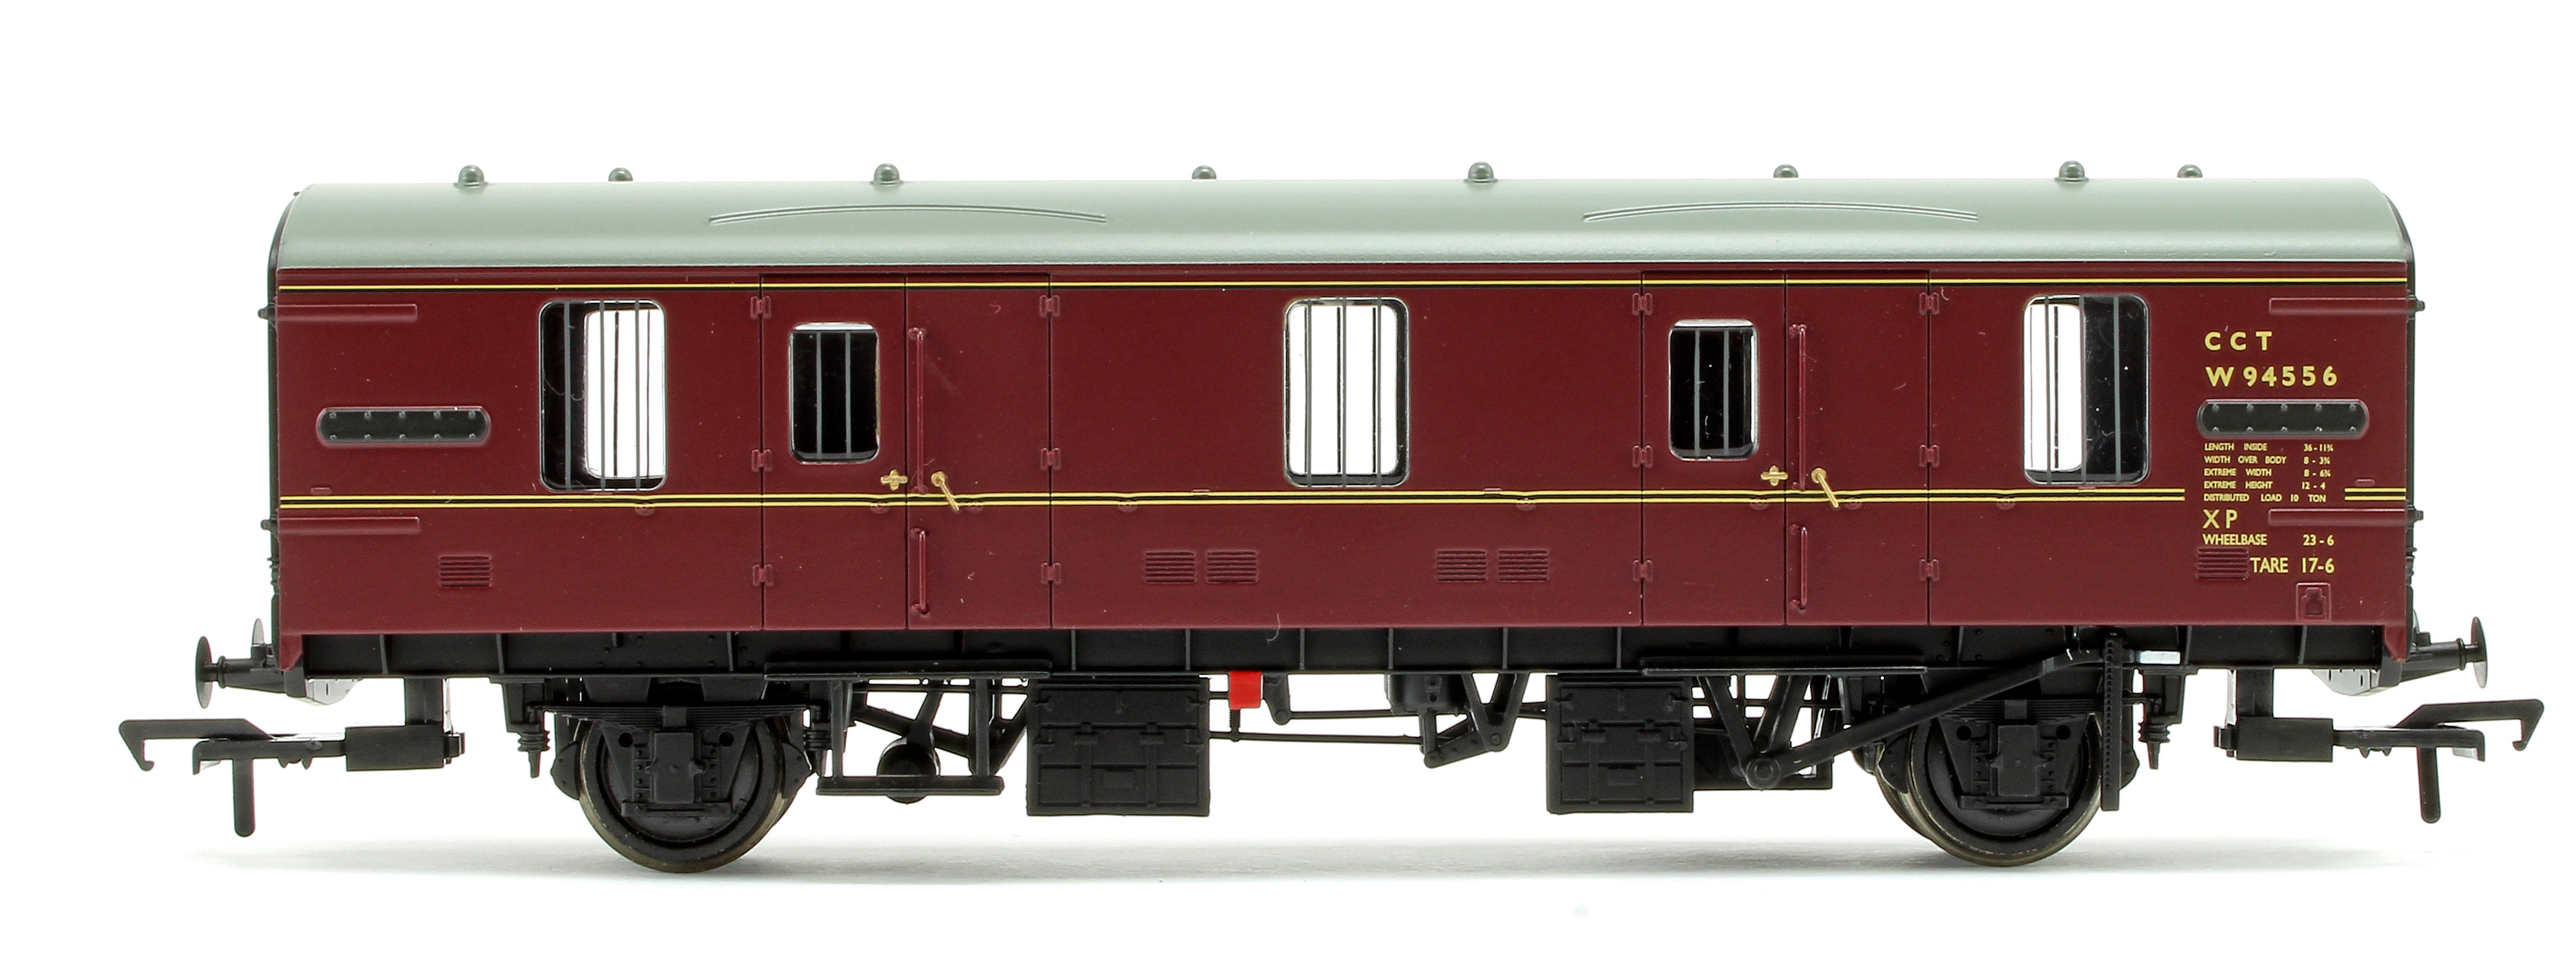 39-550 Bachmann OO Gauge BR Mk1 CCT Covered Carriage Truck BR Maroon